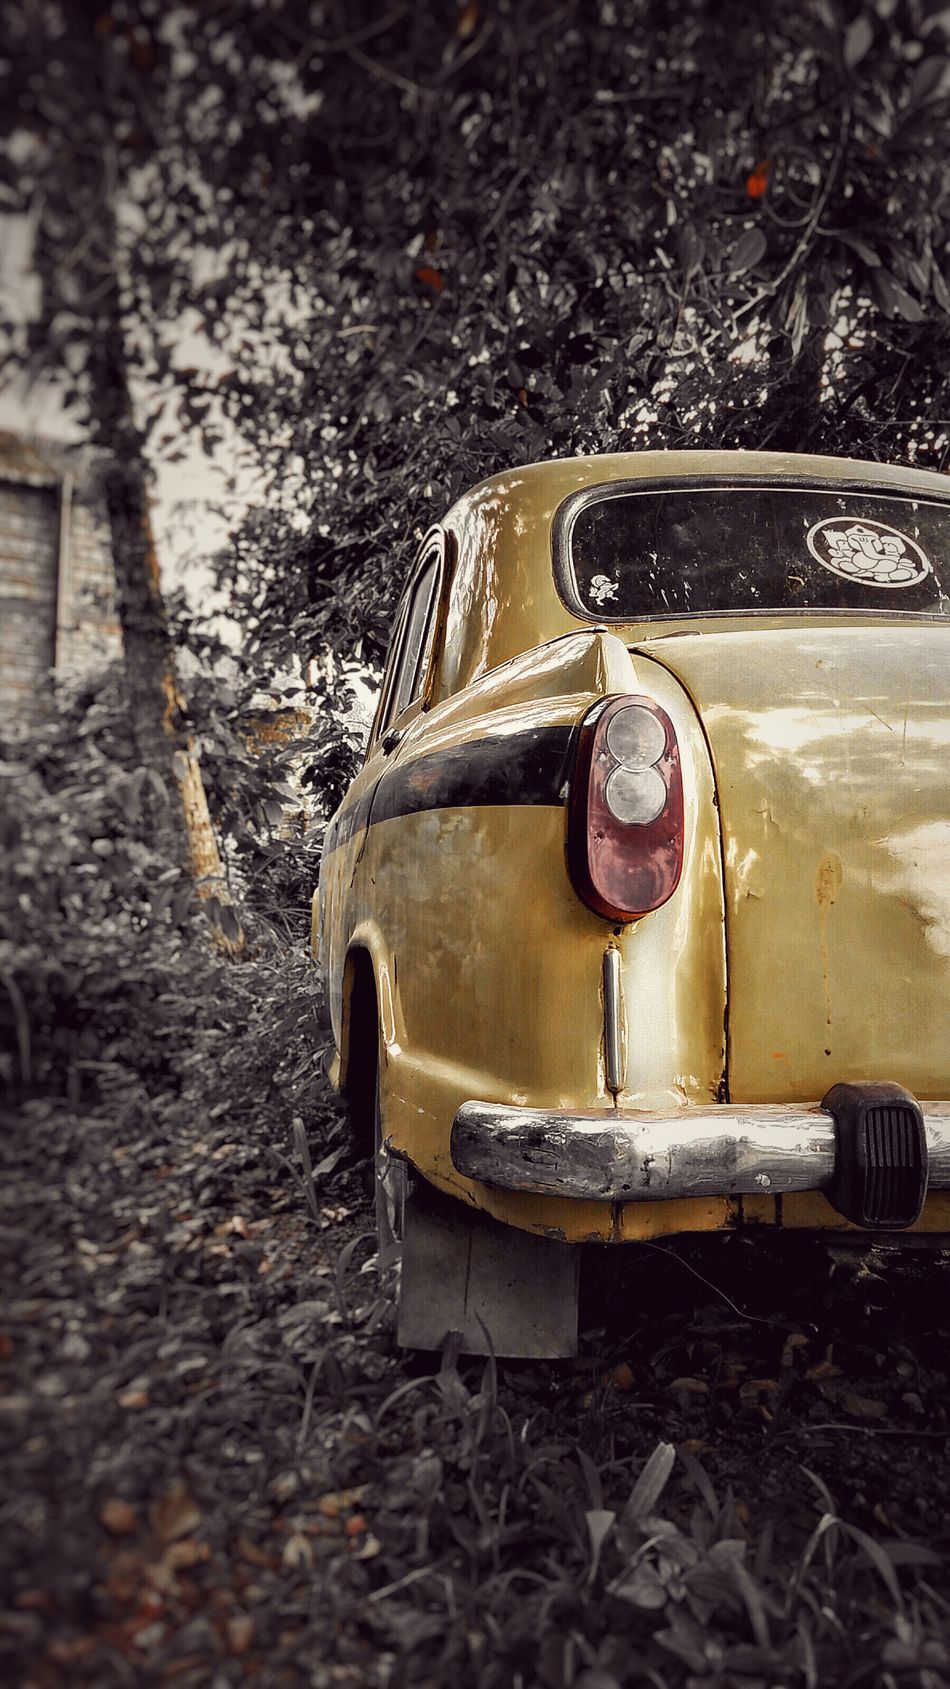 Car Transportation Abandoned Land Vehicle Outdoors Old-fashioned No People Day Close-up Photography Photo Of The Day Wallpaper 4K HDR IPhone Vintage Blackandwhite Old Car India Taxi Cab Kolkata Photo Graphy Photo Yellow Lieblingsteil Miles Away EyeEmNewHere The City Light